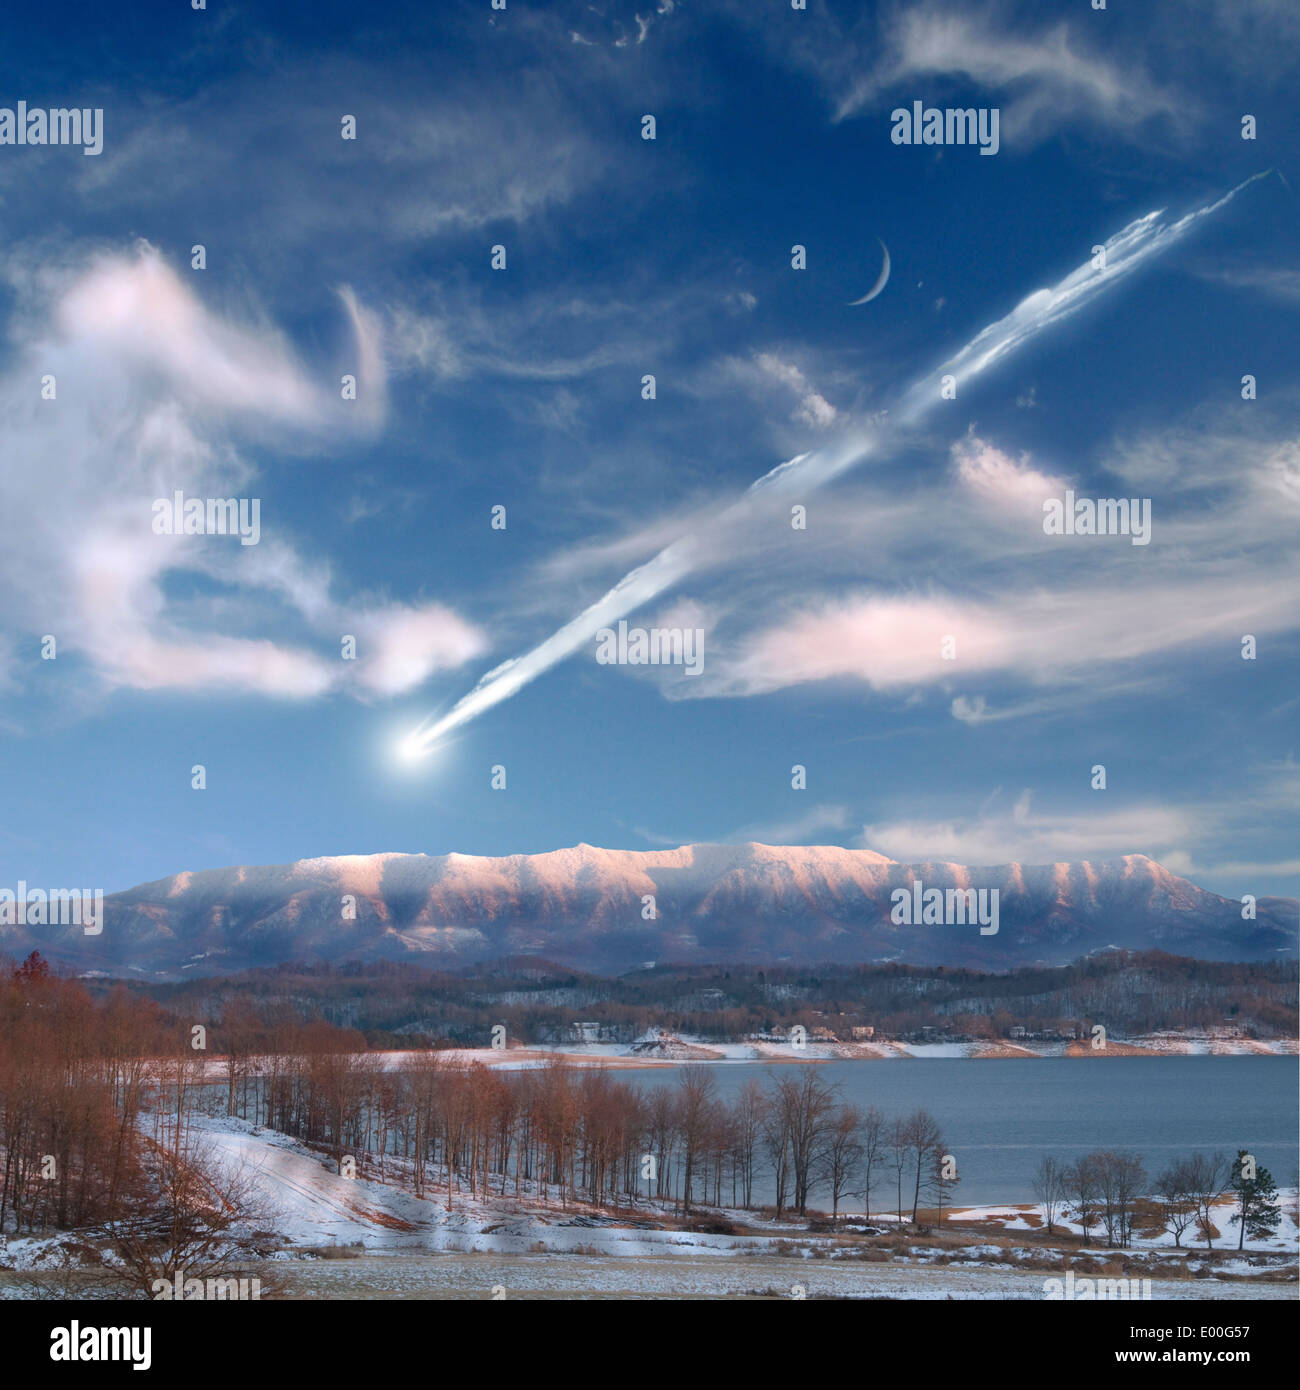 An artist's depiction of a large meteor entering Earth's atmosphere and about to impact in a mountainous area. Stock Photo